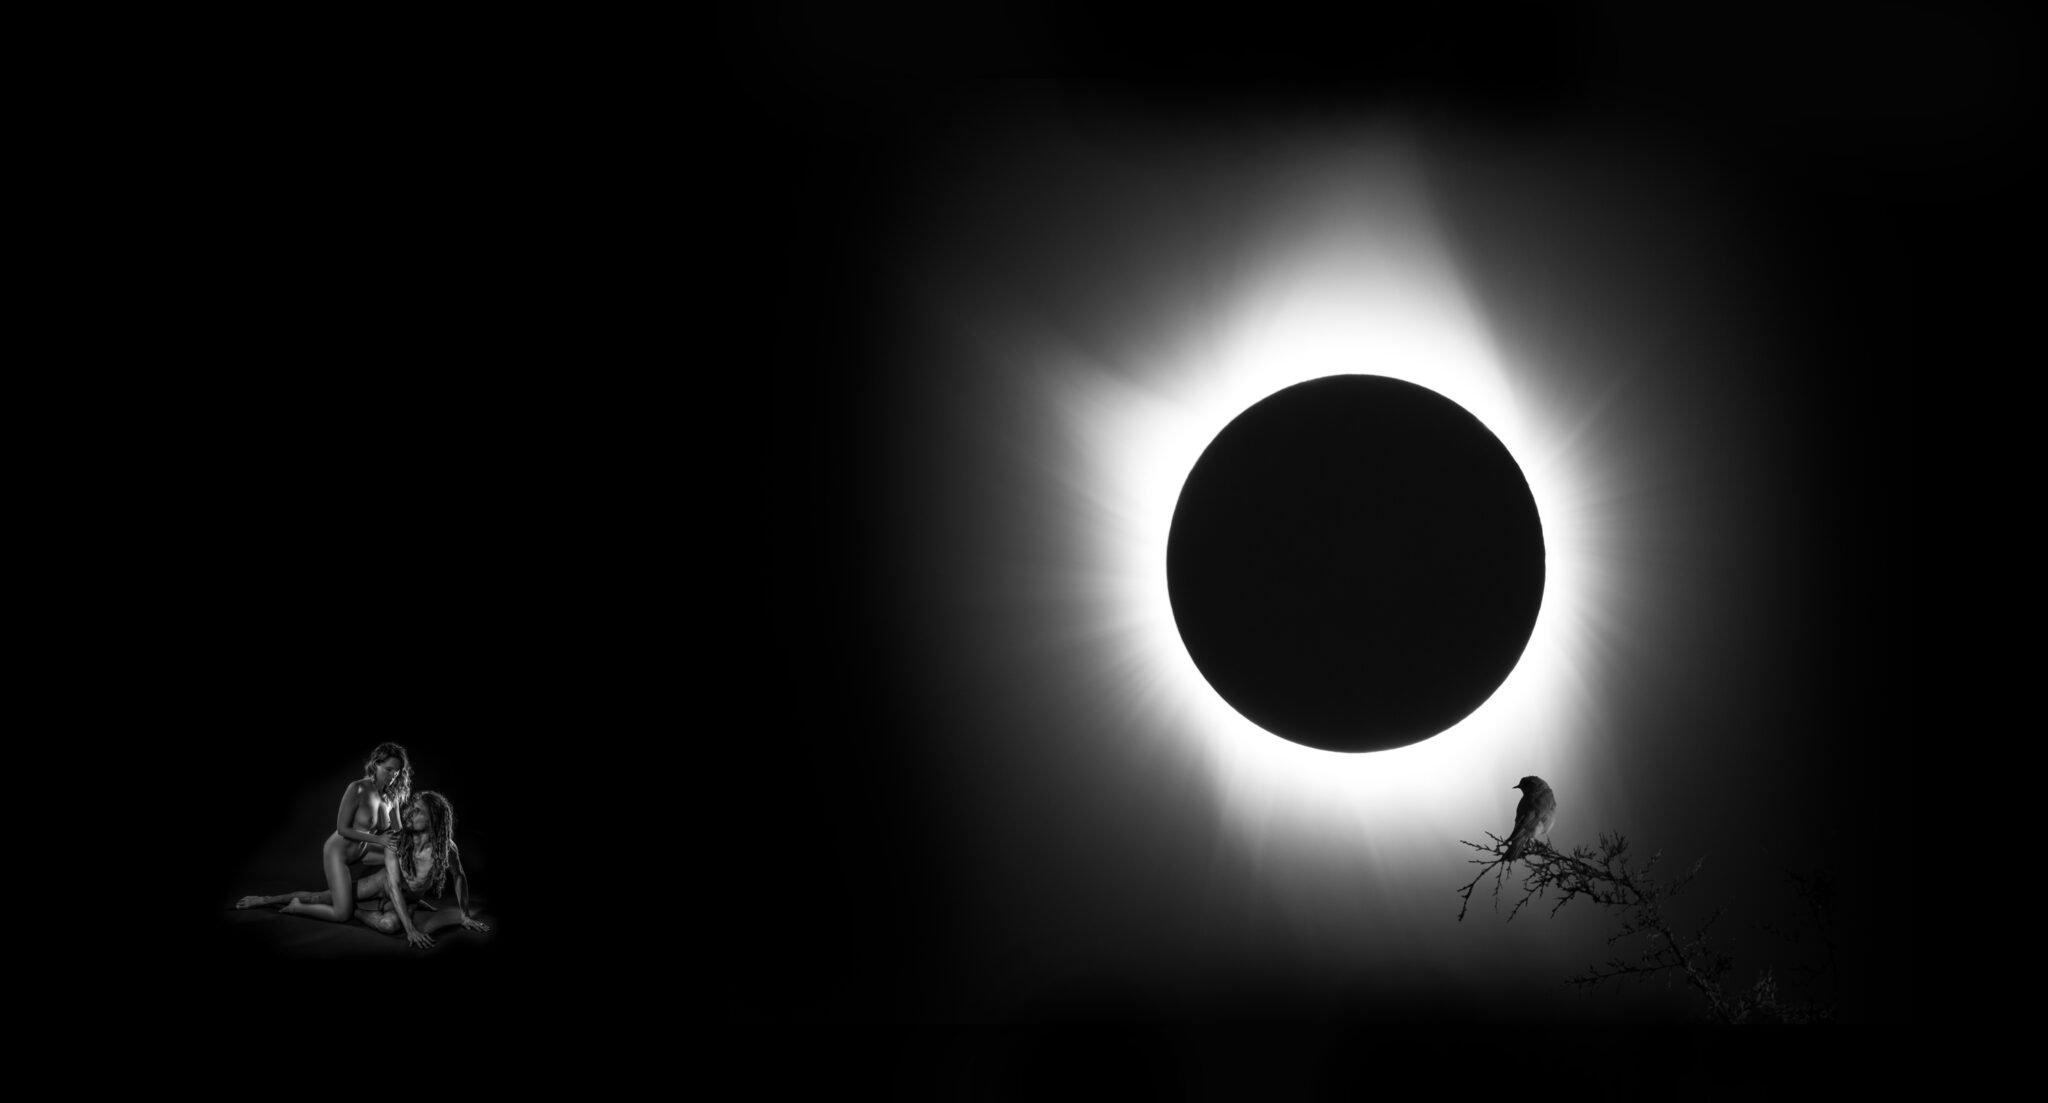 Black and white composite photograph depicting a naked couple who are laying under the dramatic sky of a solar eclipse with a small bird watching over them.